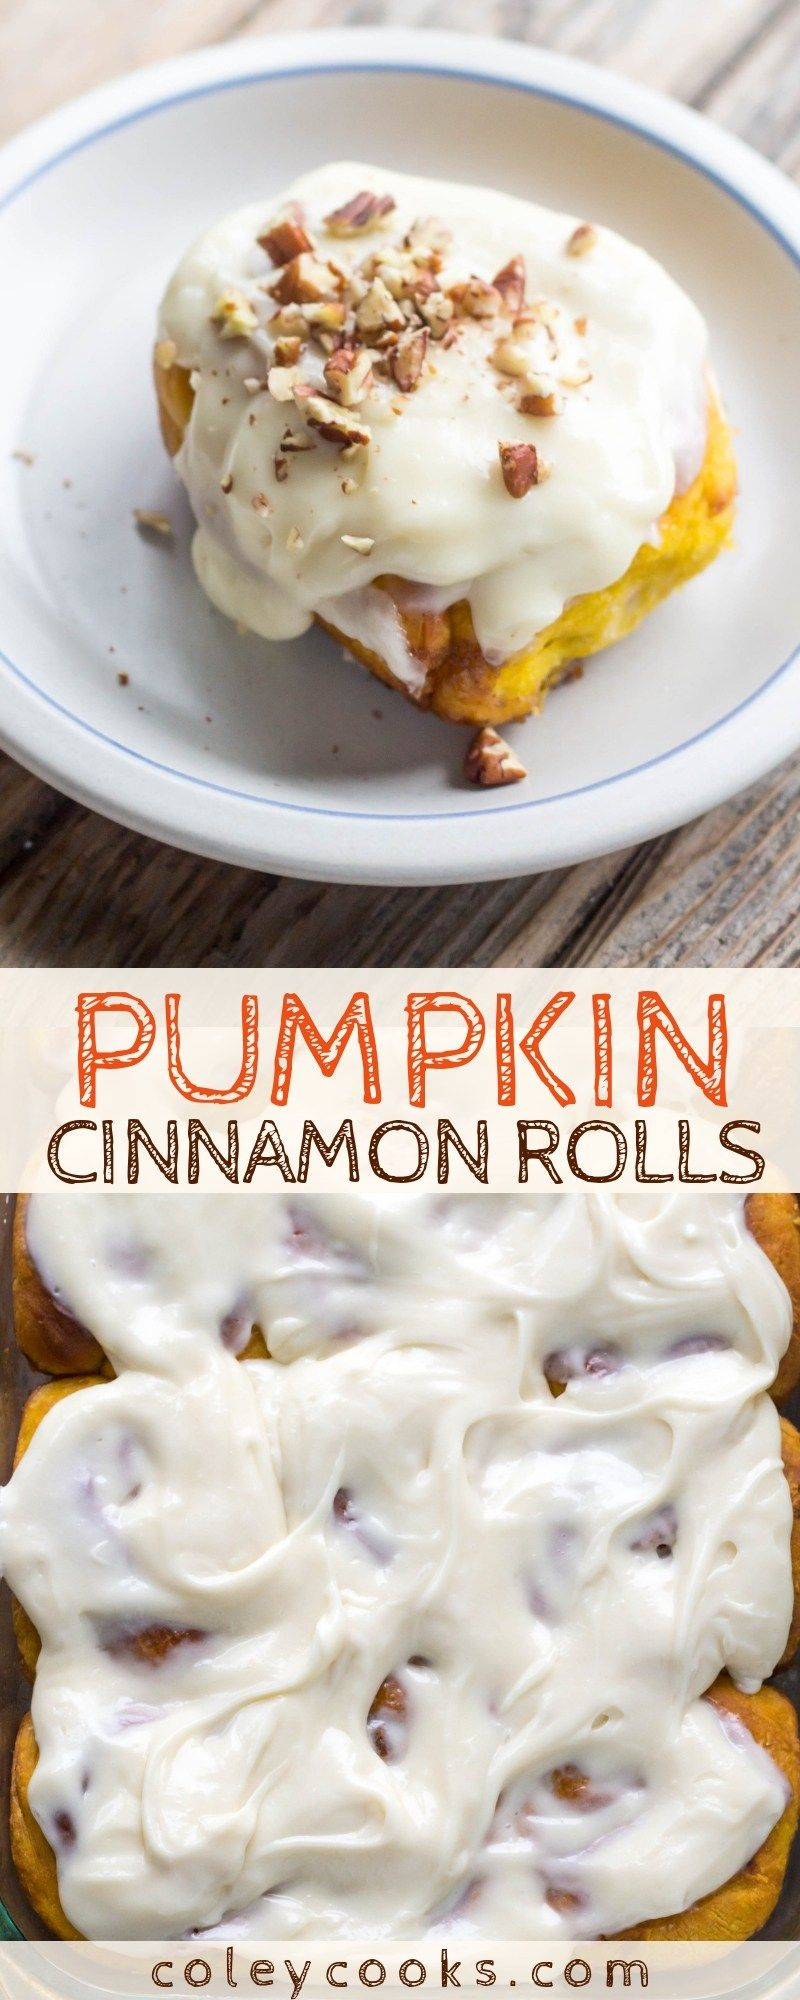 Pumpkin Cinnamon Rolls PUMPKIN CINNAMON ROLLS | Insanely delicious pumpkin cinnamon bun recipe with cream cheese frosting perfect for fall and Thanksgiving! |